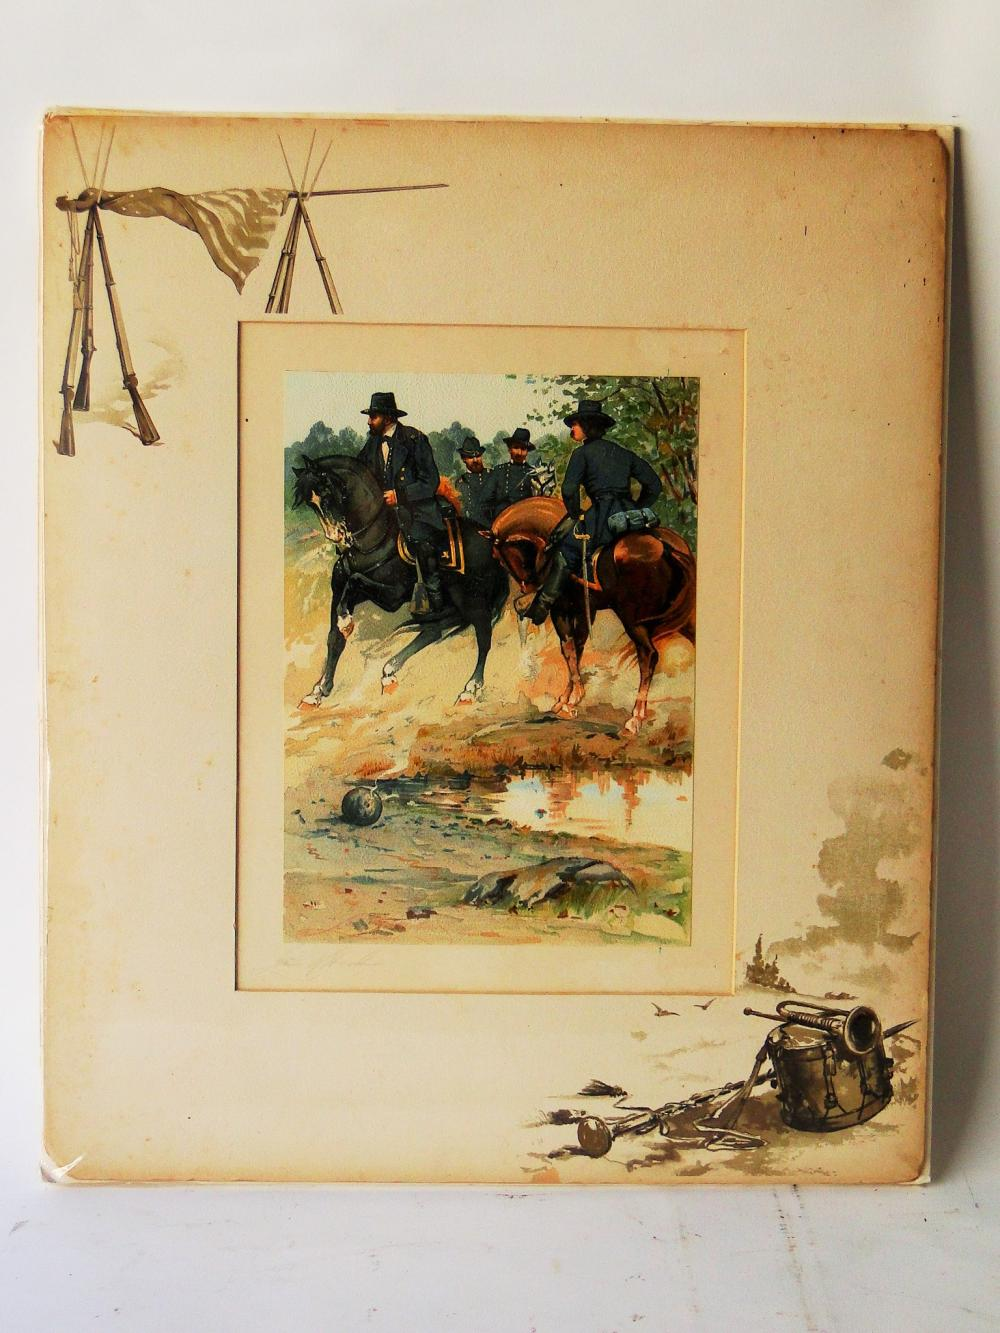 CIVIL WAR LITHOGRAPH BY LOUIS HARLOW